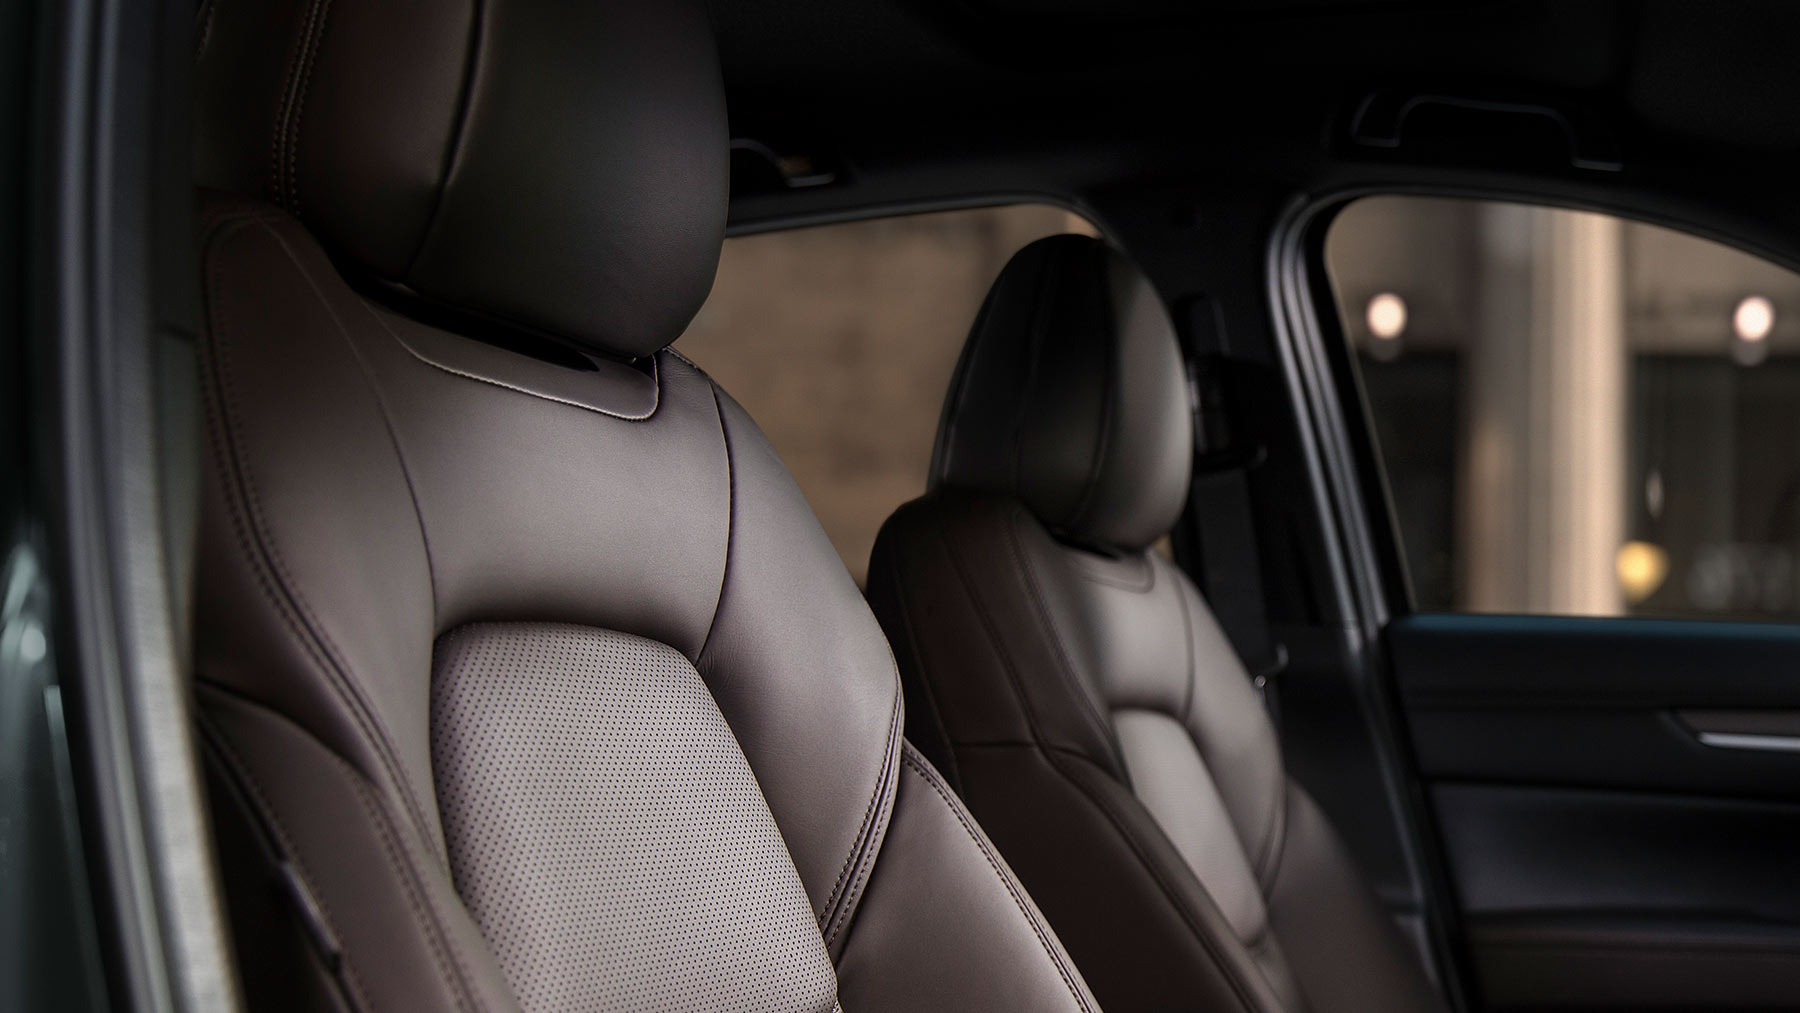 2019 Mazda CX-5 Seating